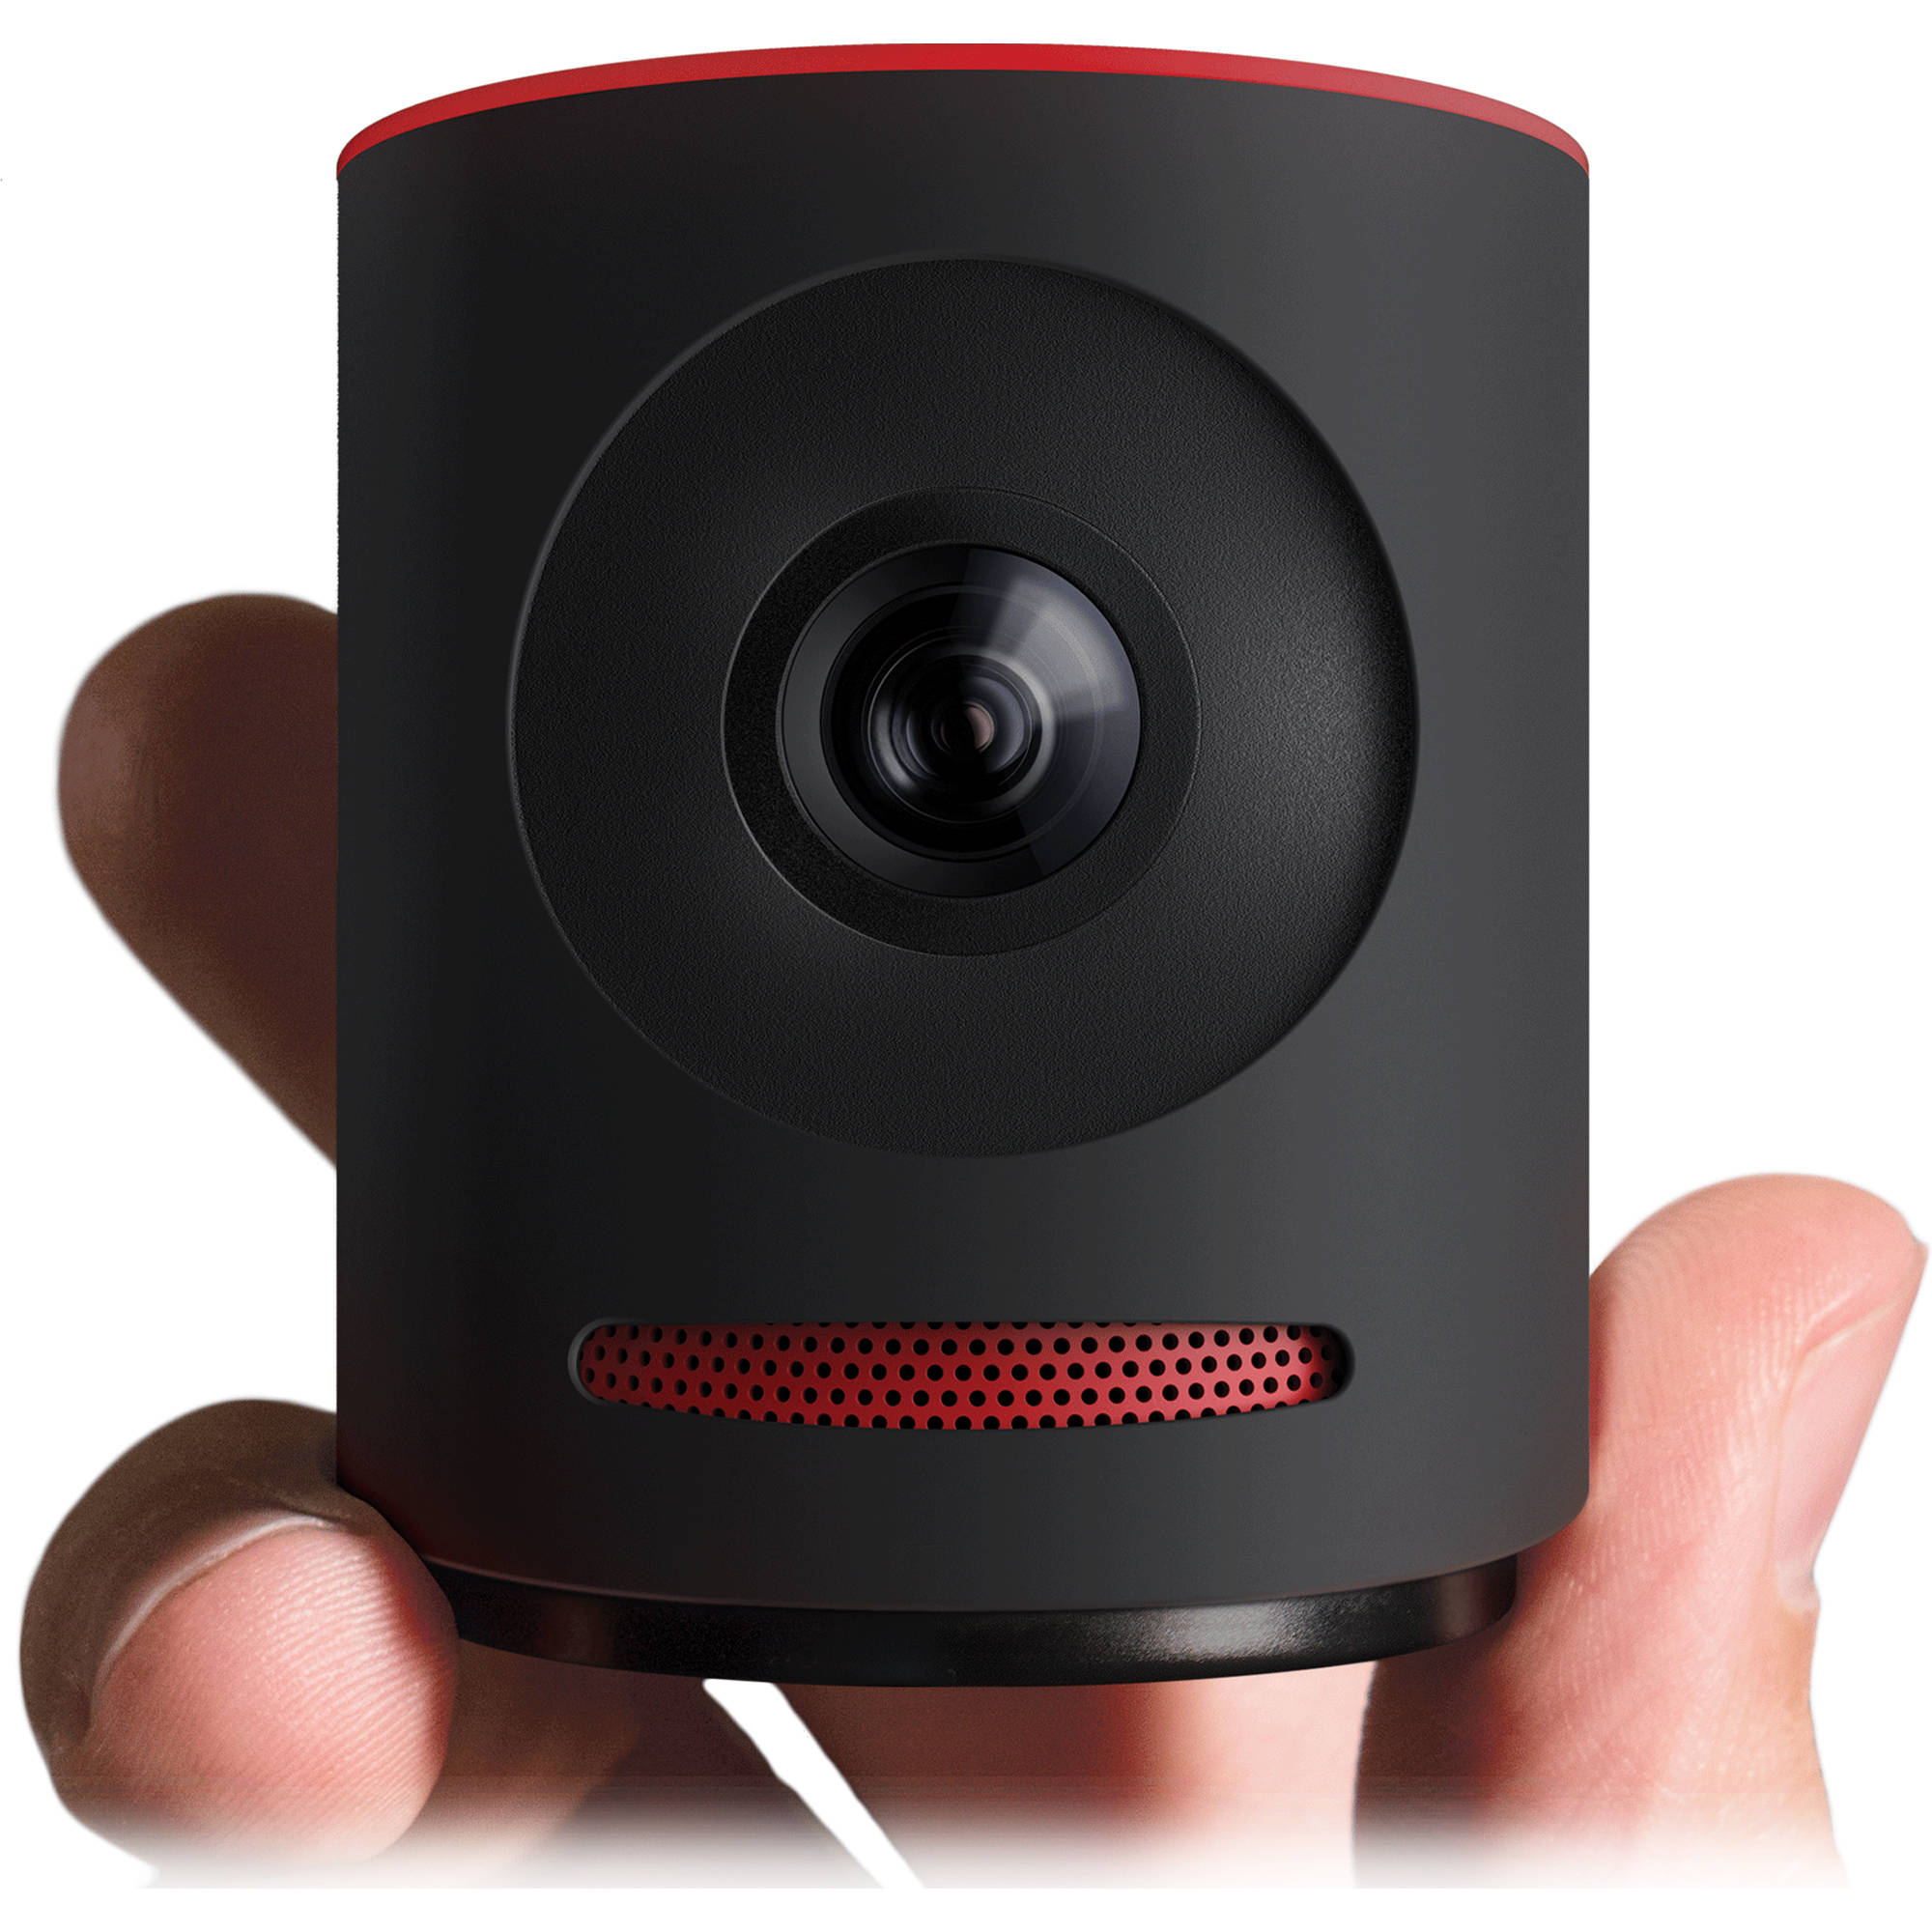 Mevo live event camera by livestream black mv1 01a bl b h for Camera streaming live